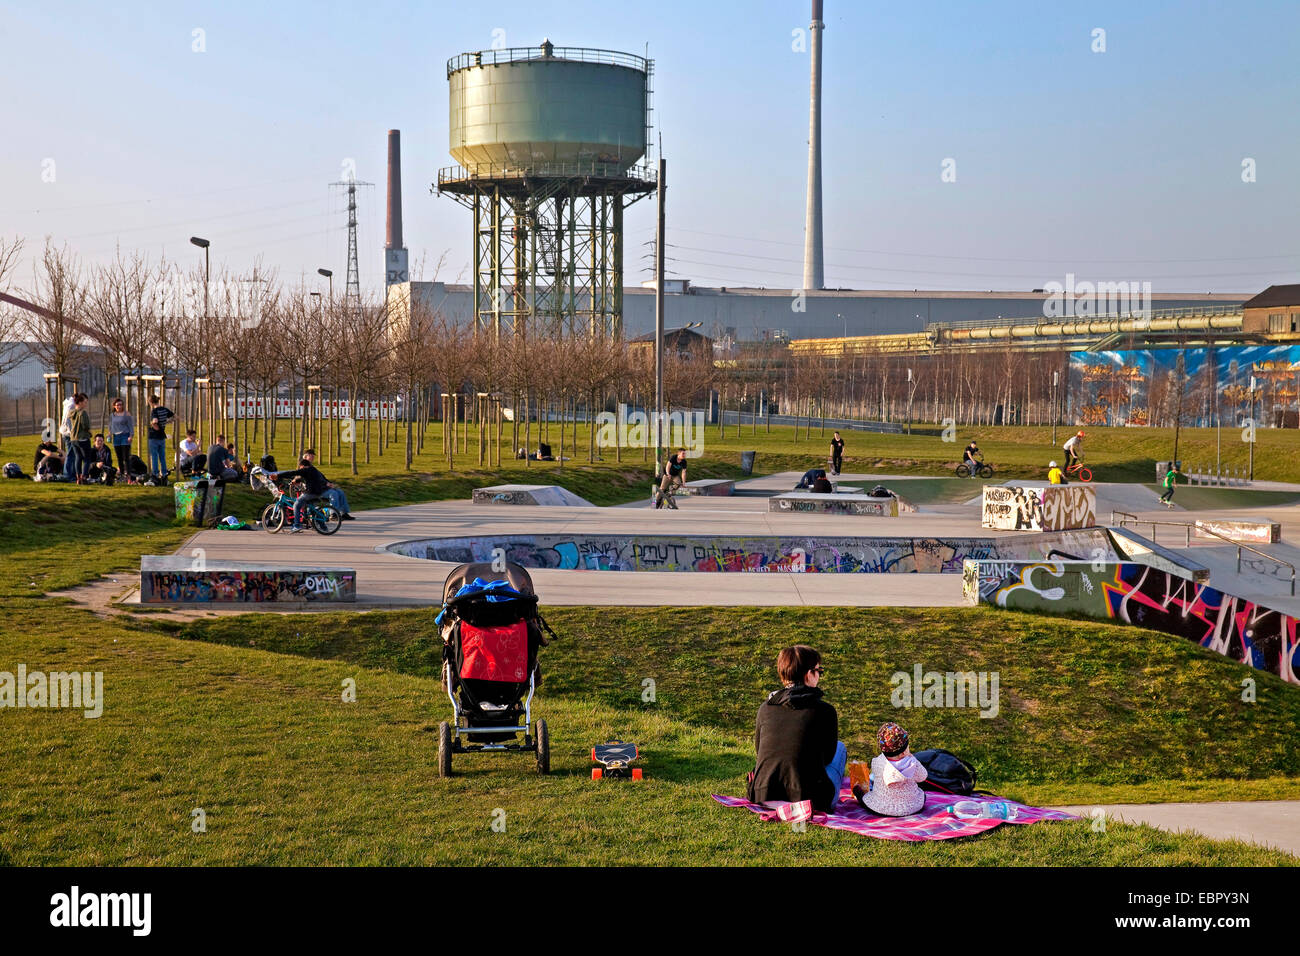 leisure time activities in Rheinpark Duisburg, Germany, North Rhine-Westphalia, Ruhr Area, Duisburg - Stock Image